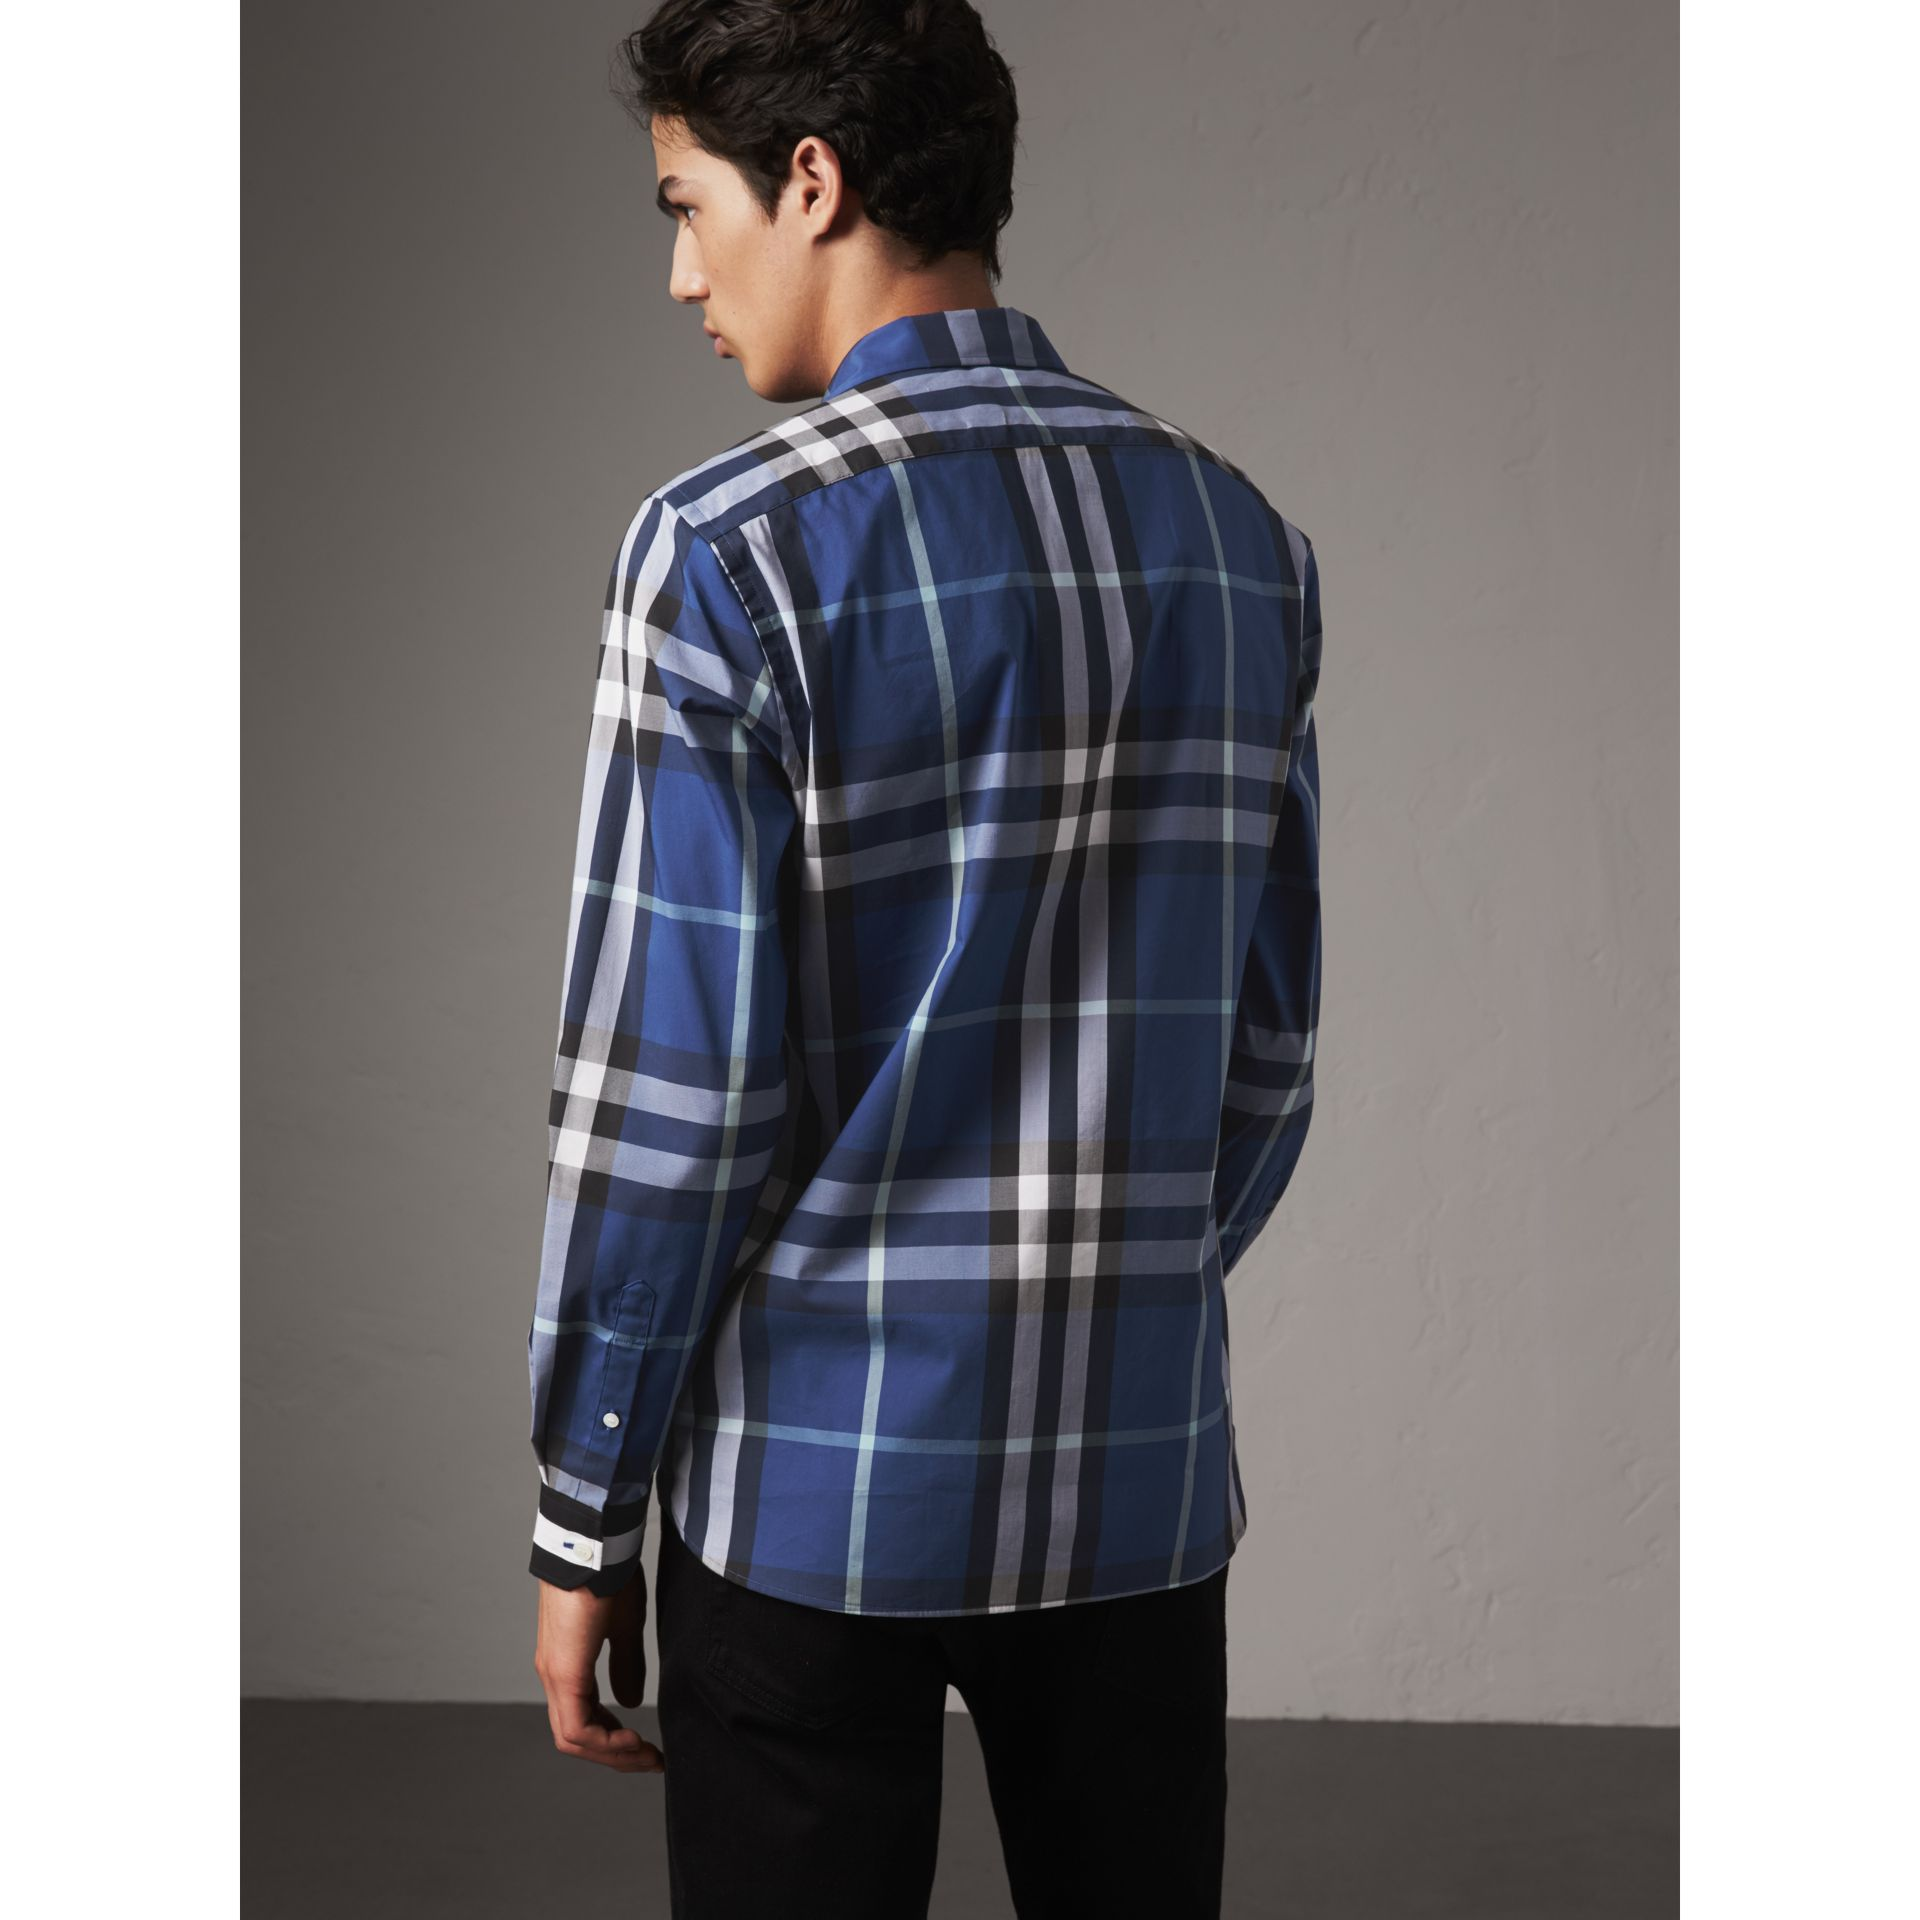 Striped Cuff Check Cotton Blend Shirt in Cobalt Blue - Men | Burberry - gallery image 2